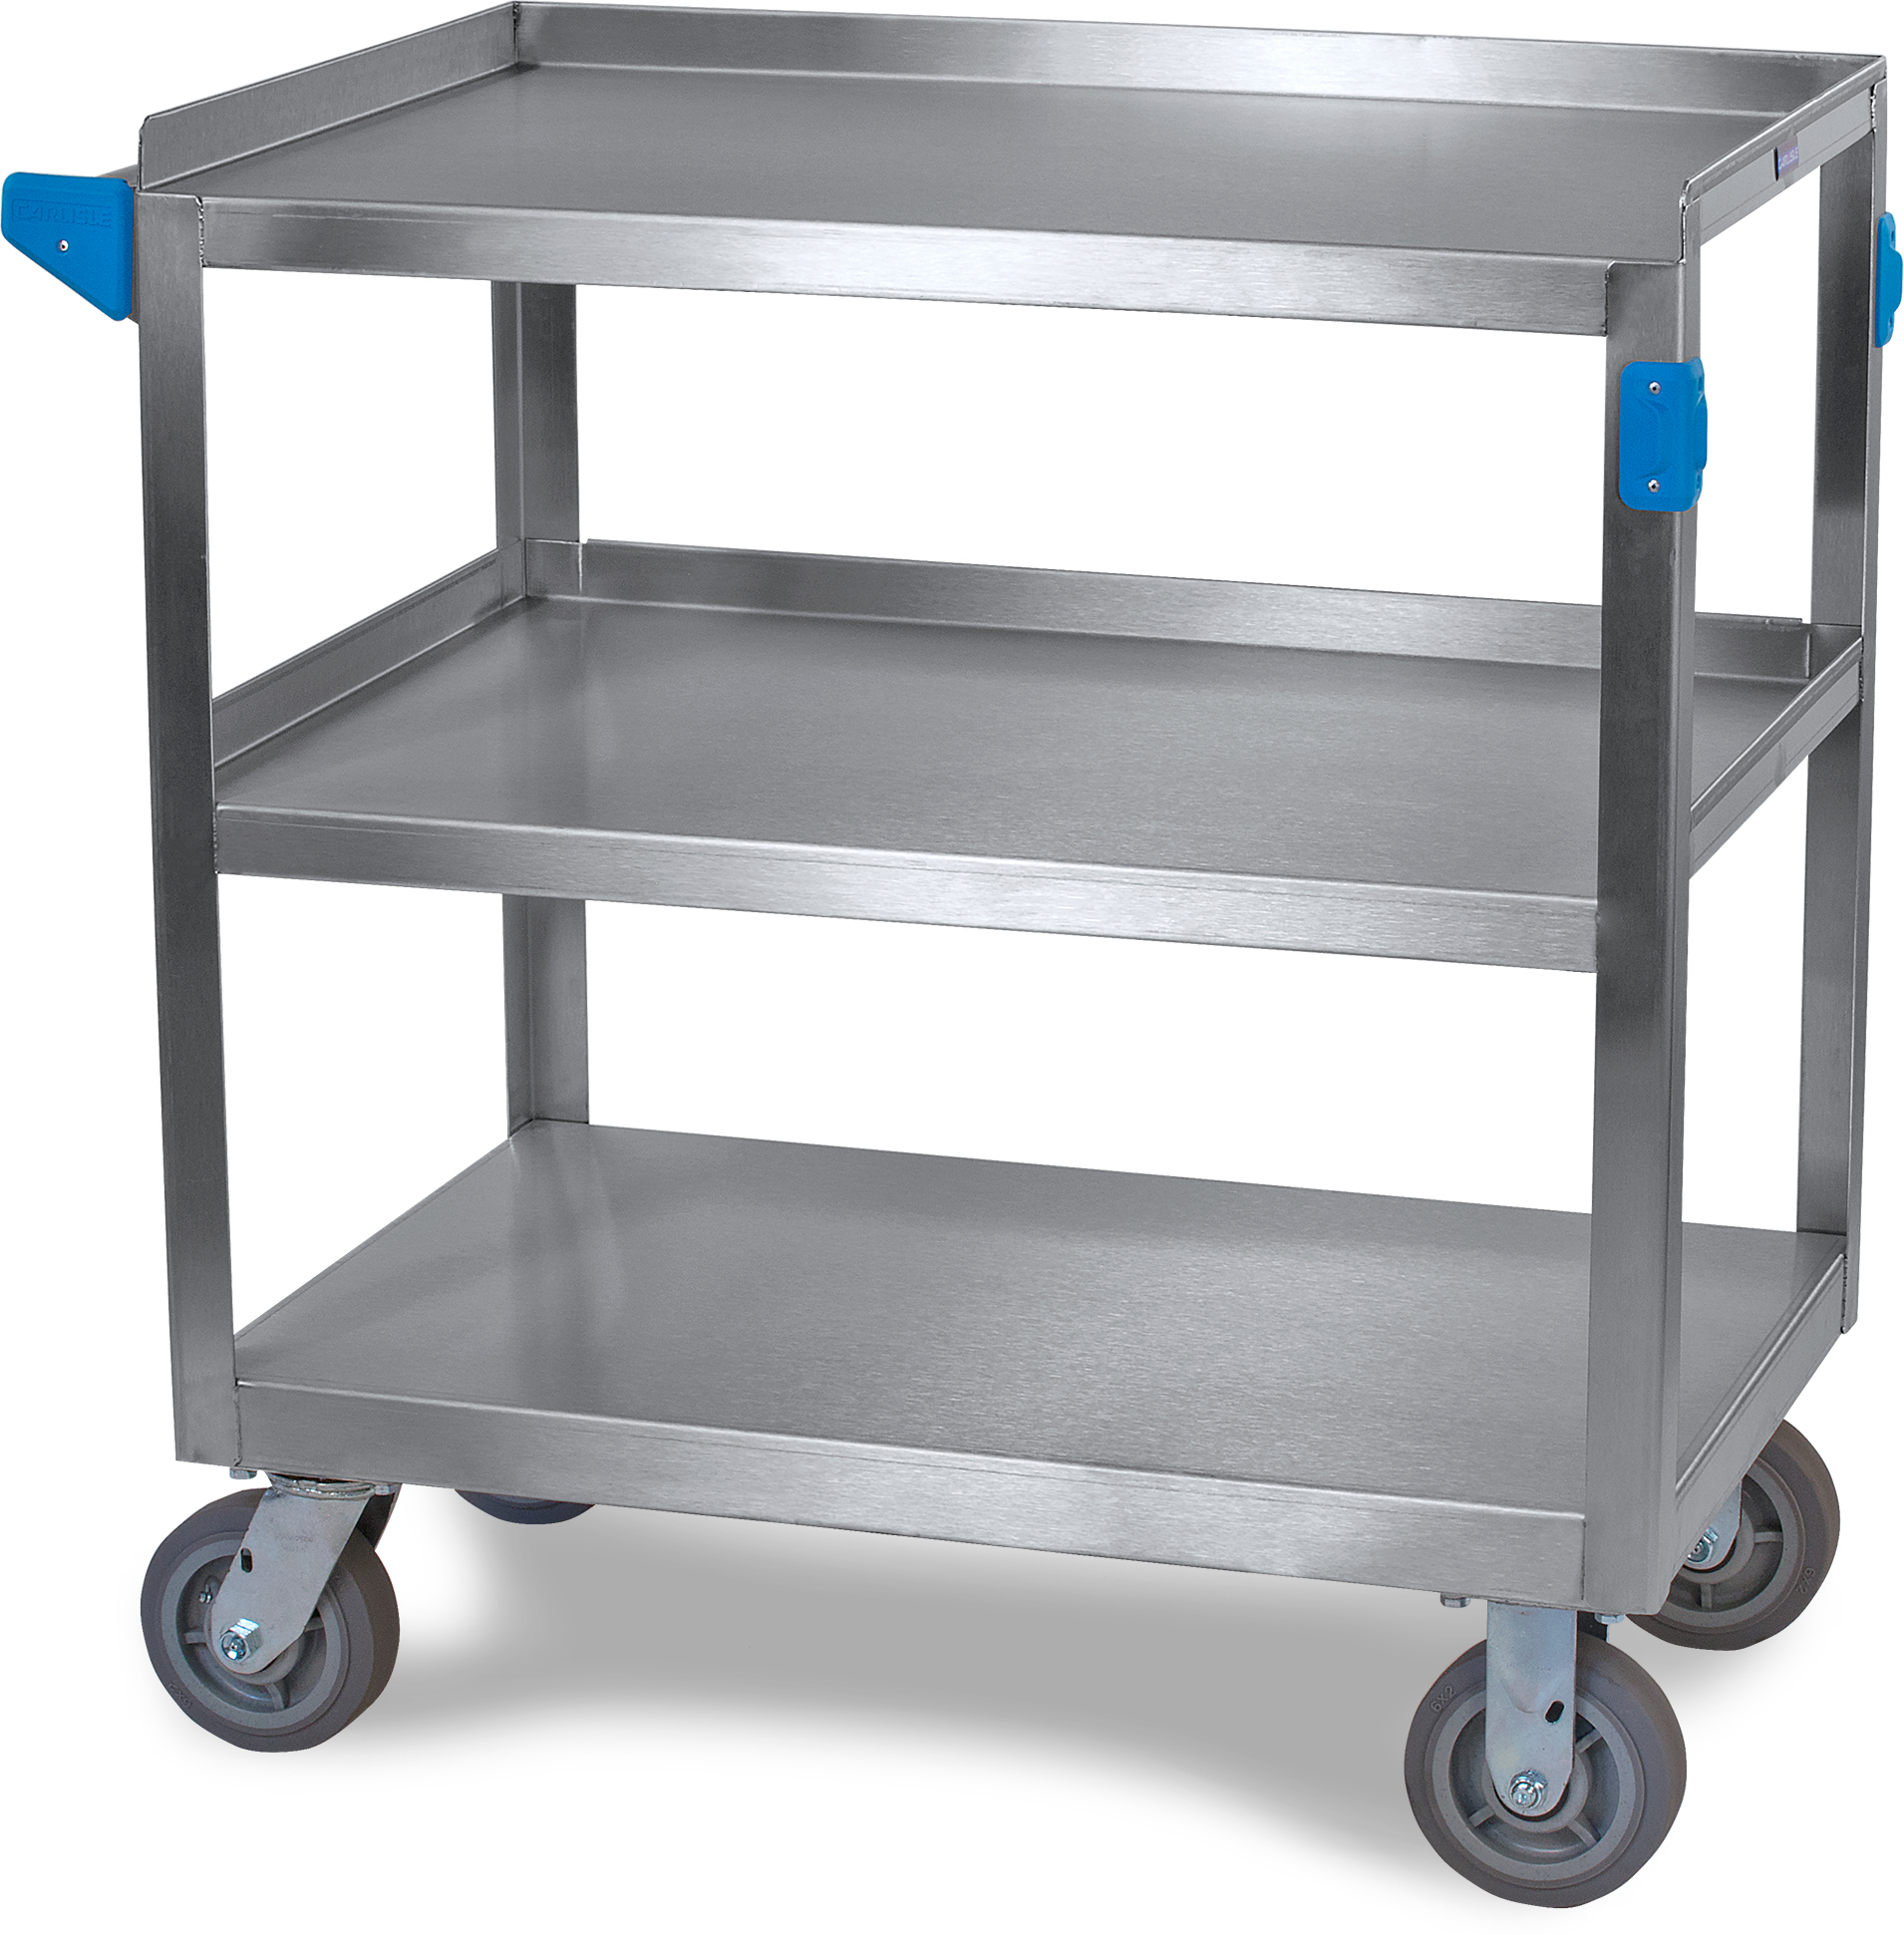 3 Shelf Stainless Steel Utility Cart 700 lb Capacity 21 W x  33L - Stainless Steel